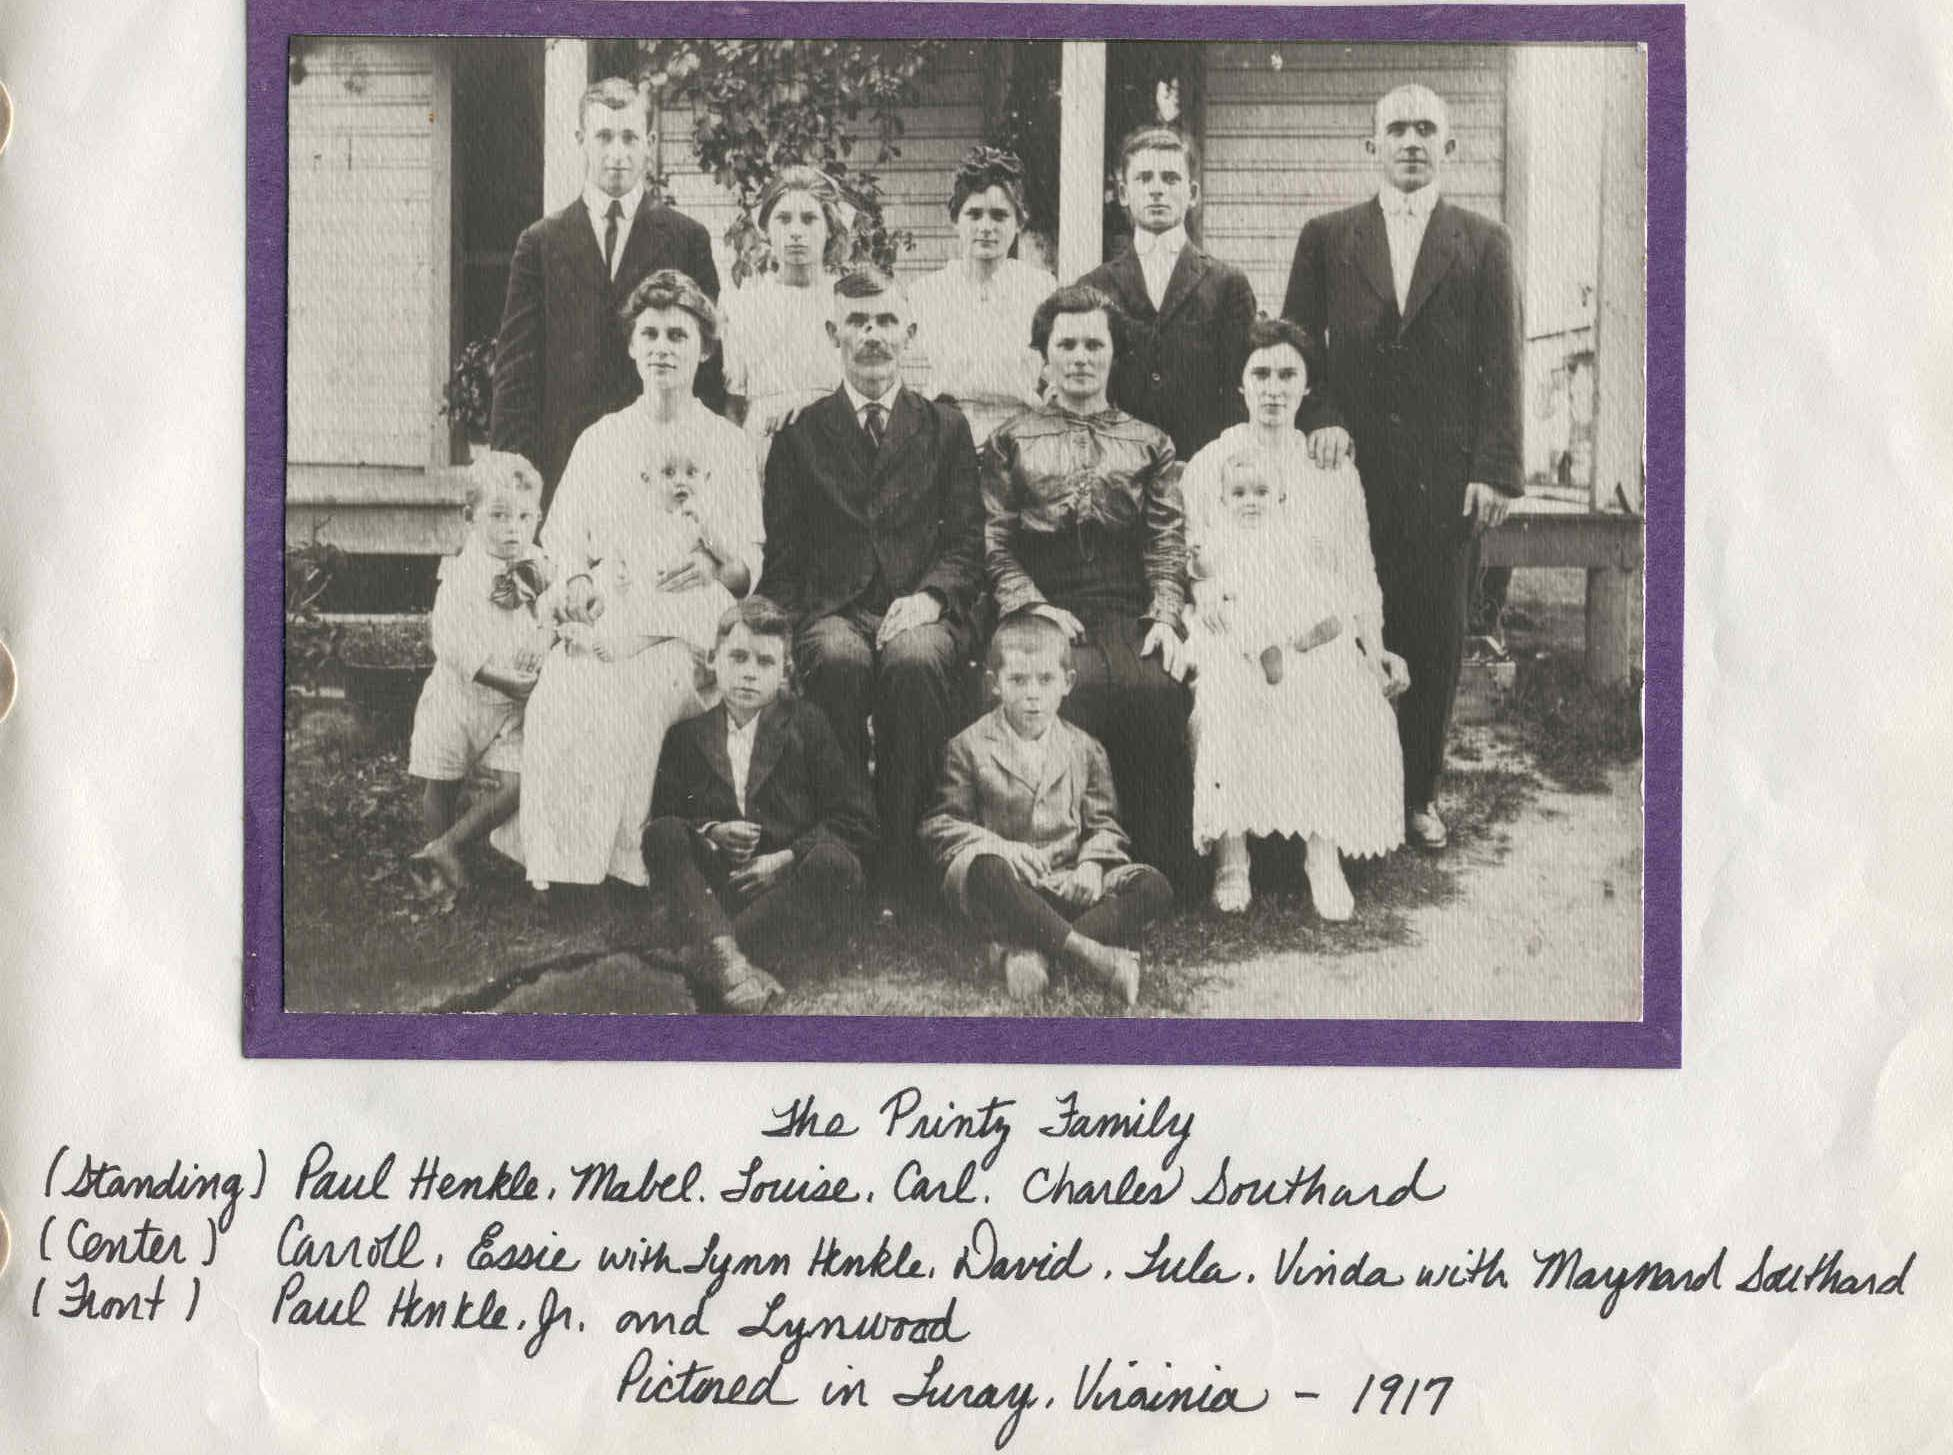 David Printz Family taken around 1917